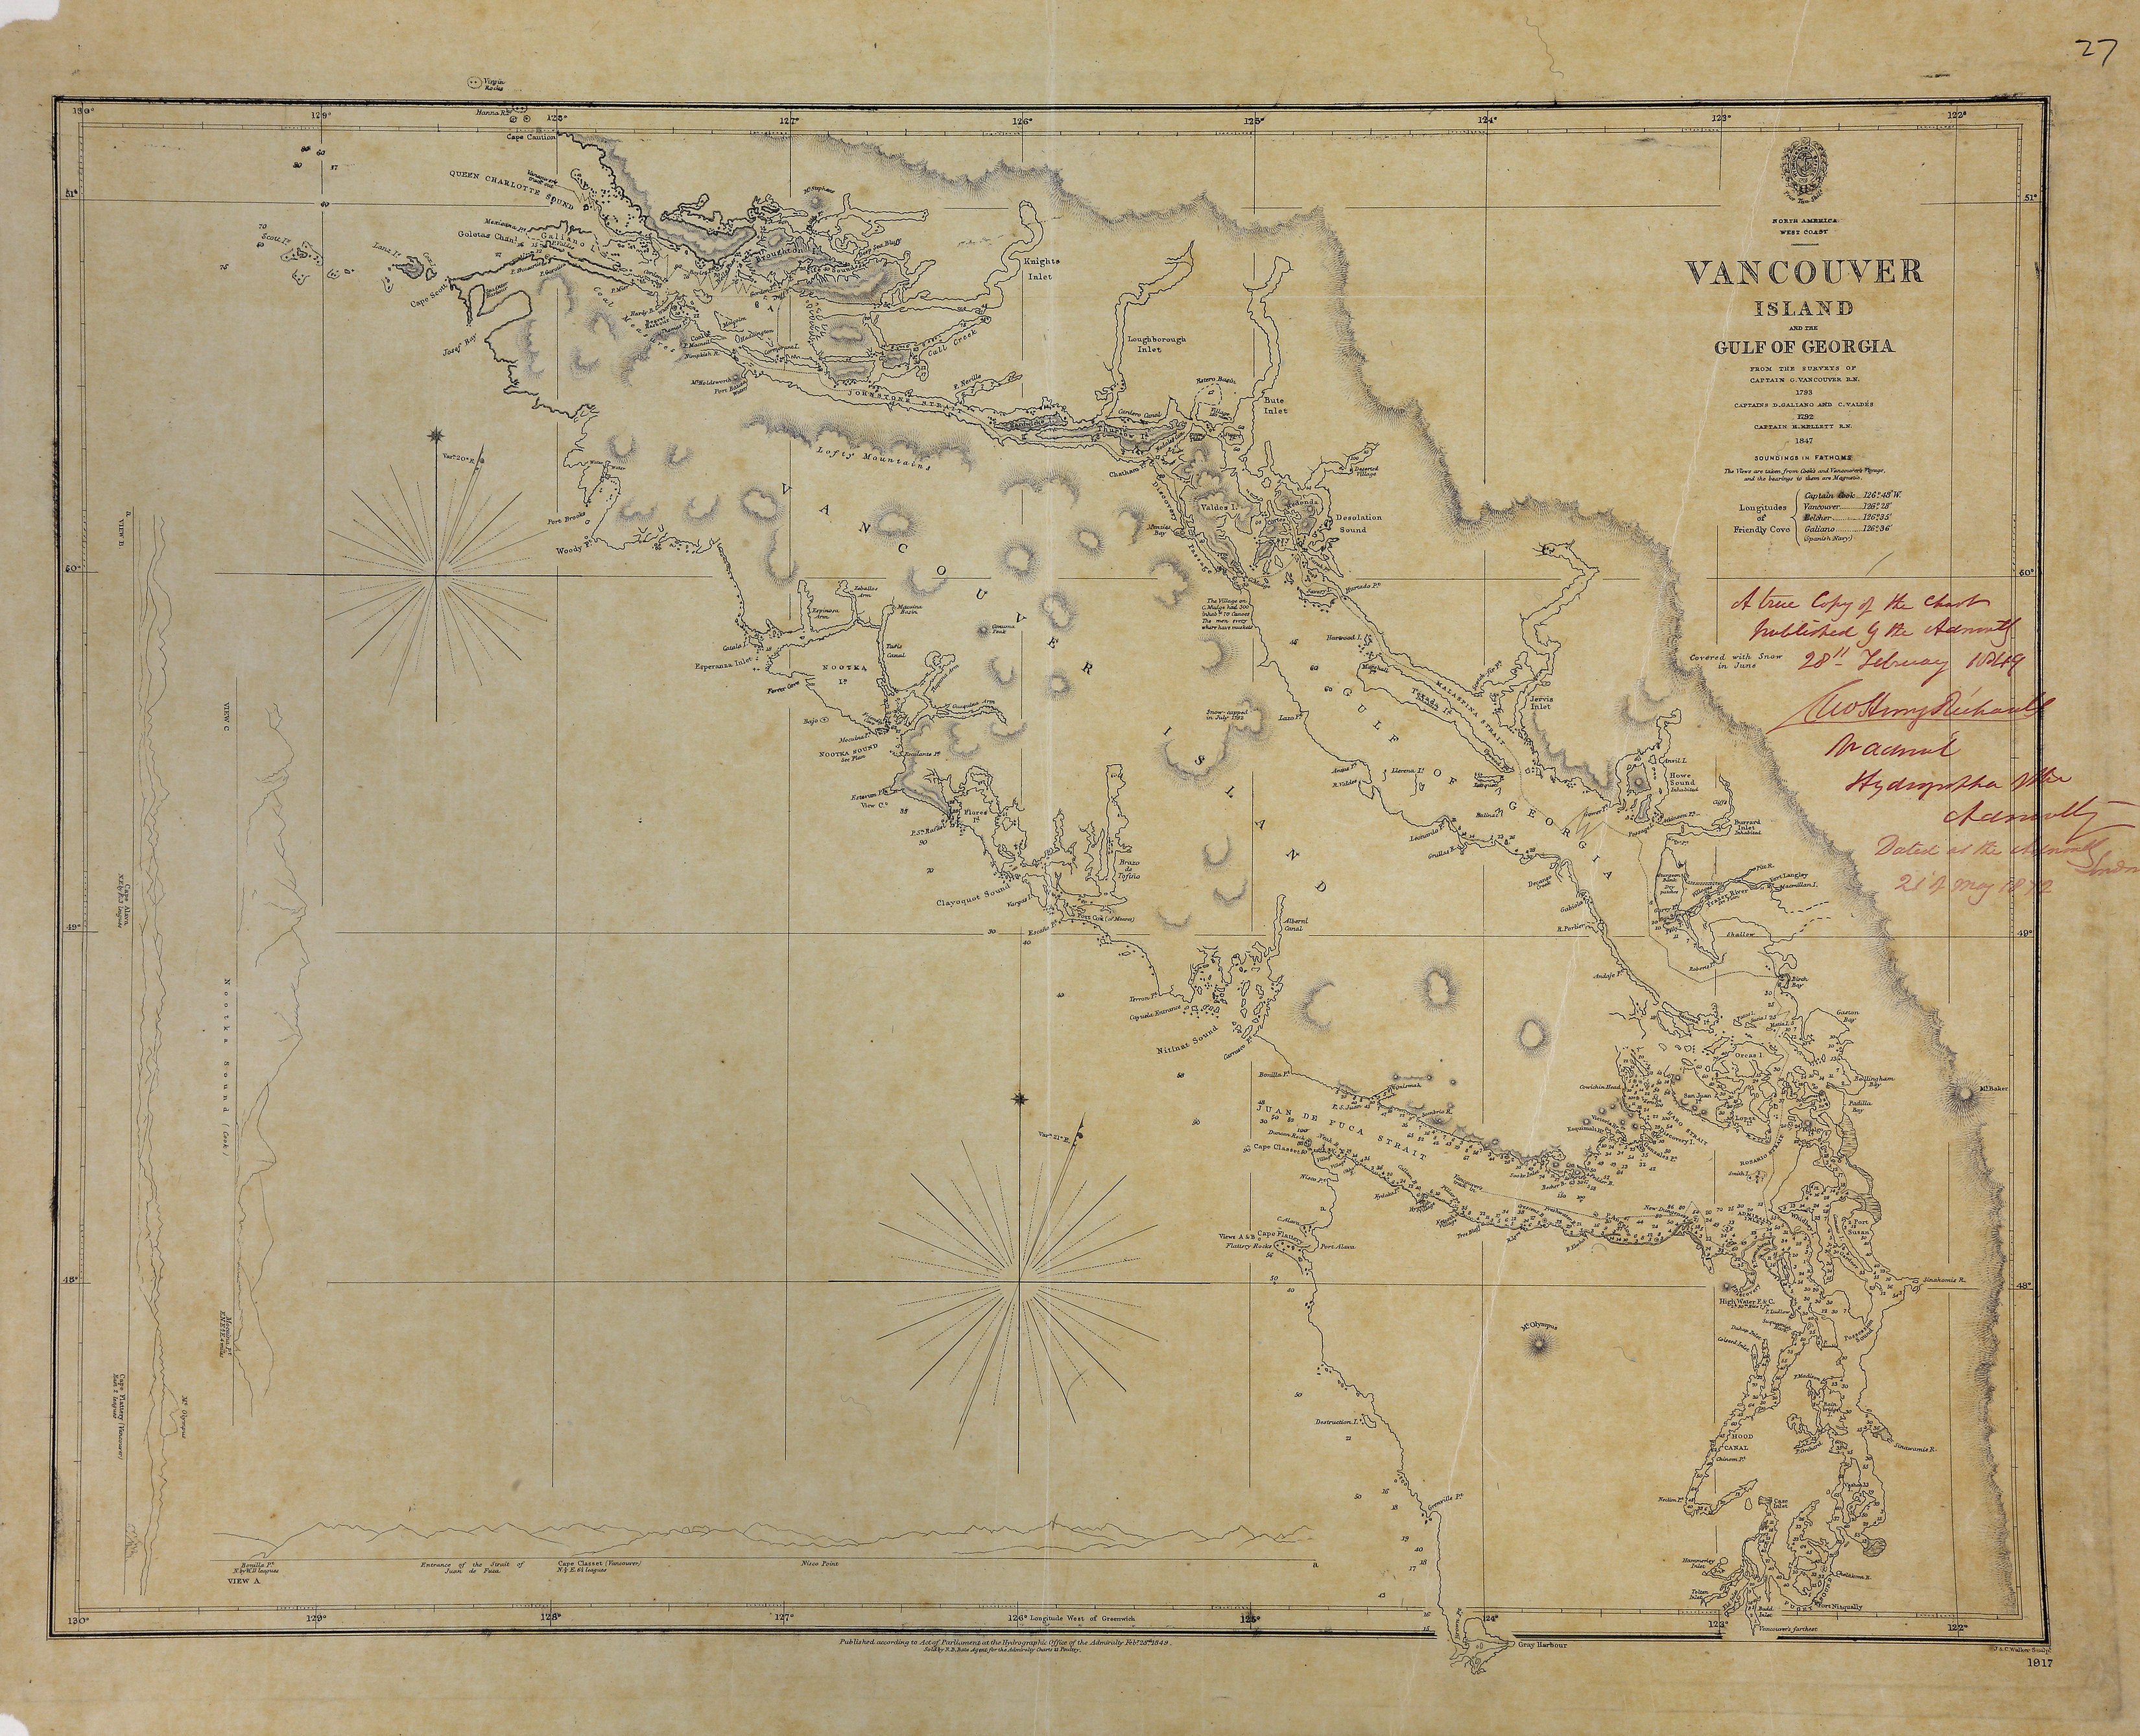 San Juan Water Boundary (Arbitration) : list of maps sent to Admiral Prevost at Berlin on the 12th June 1872 [map 26]